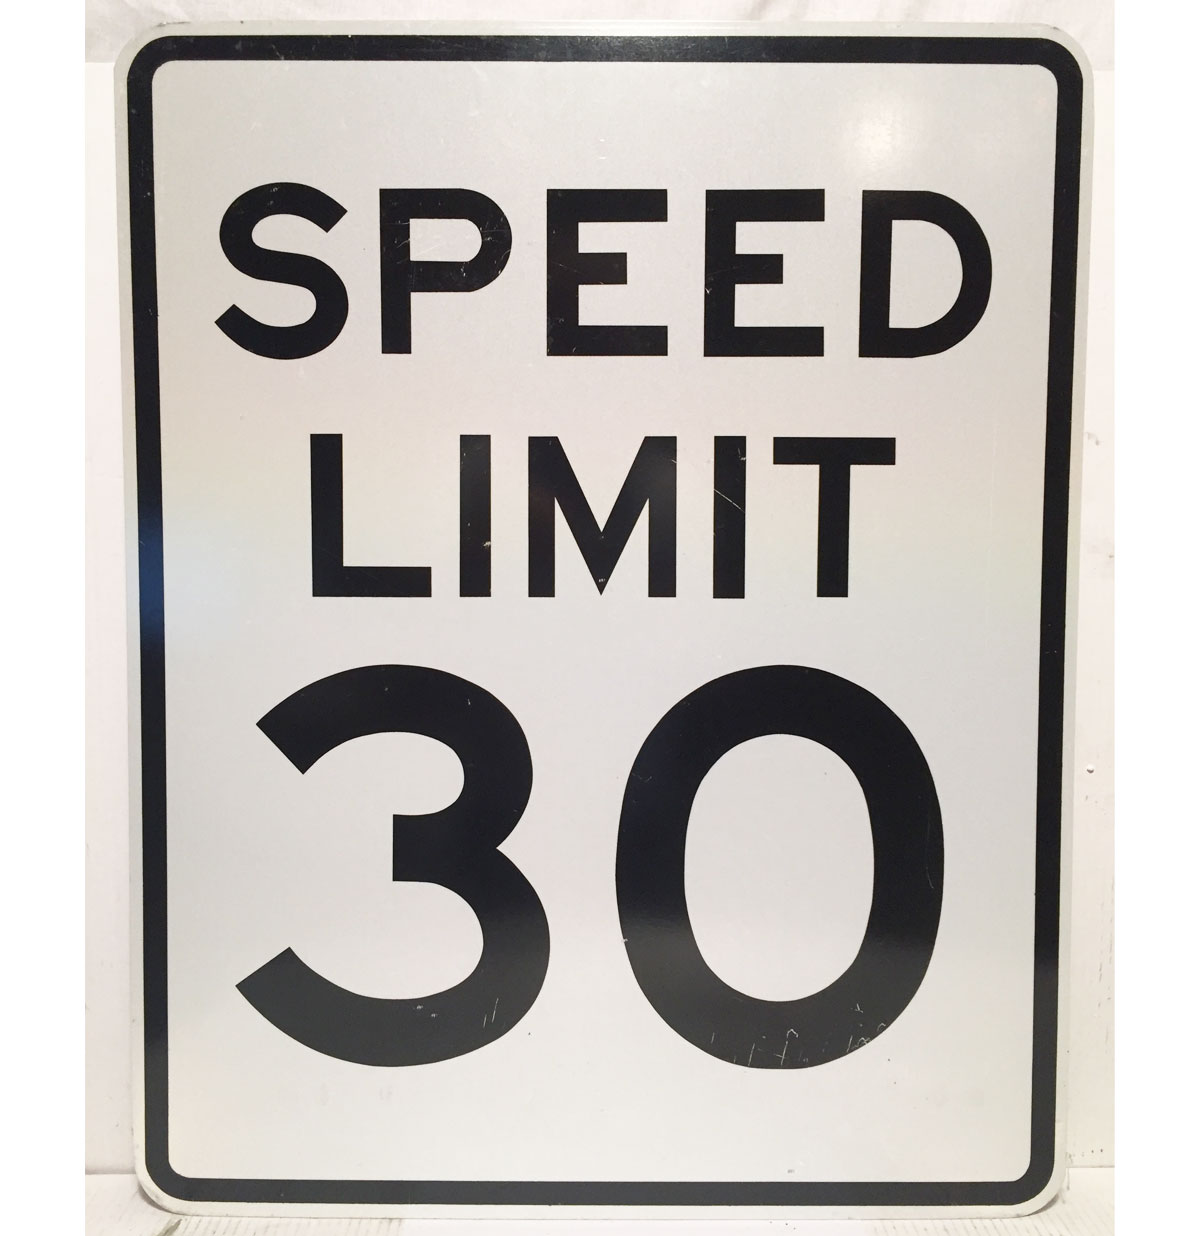 Speed Limit 30 Straatbord - Origineel